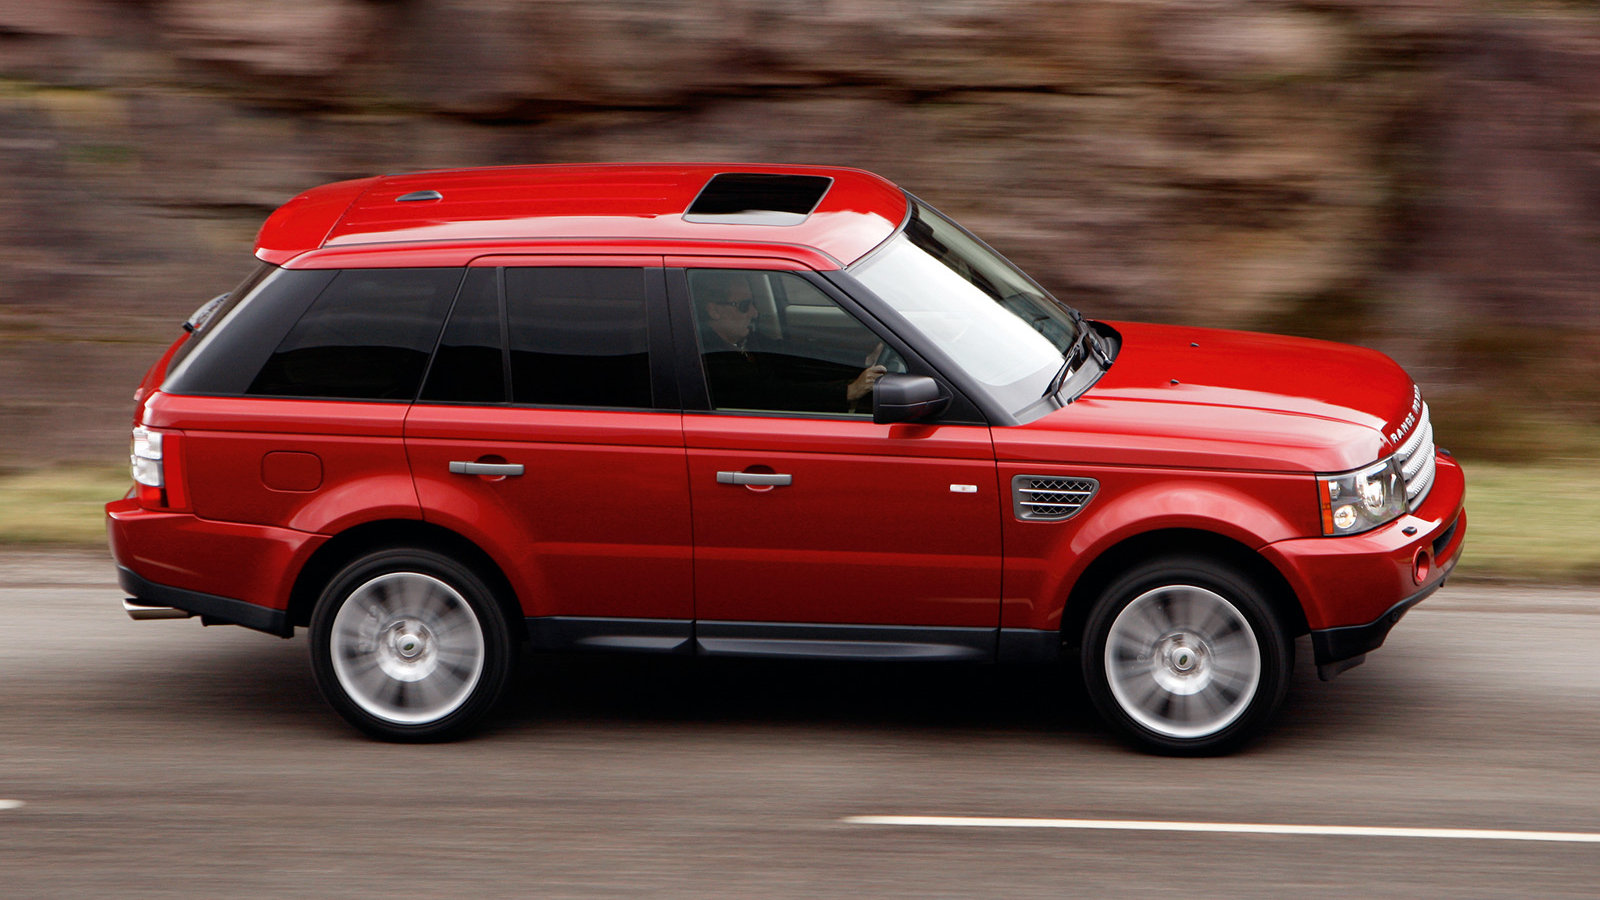 Range Rover Sport Supercharged UK